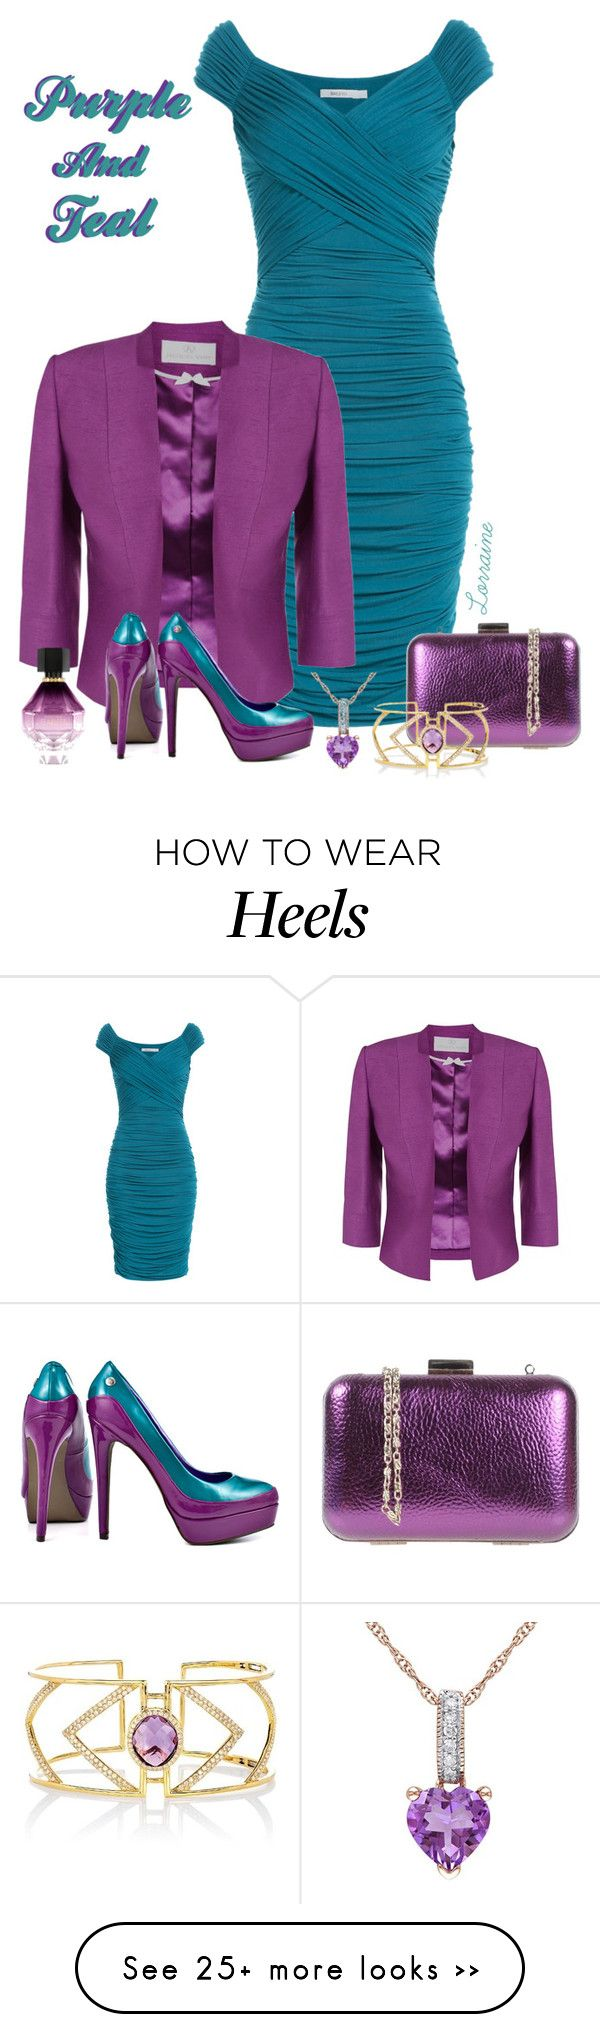 """""""Purple and Teal"""" by lorrainekeenan on Polyvore featuring Bailey 44, Jacques Vert, Silvian Heach, Blink, Effy Jewelry and Victoria's Secret"""